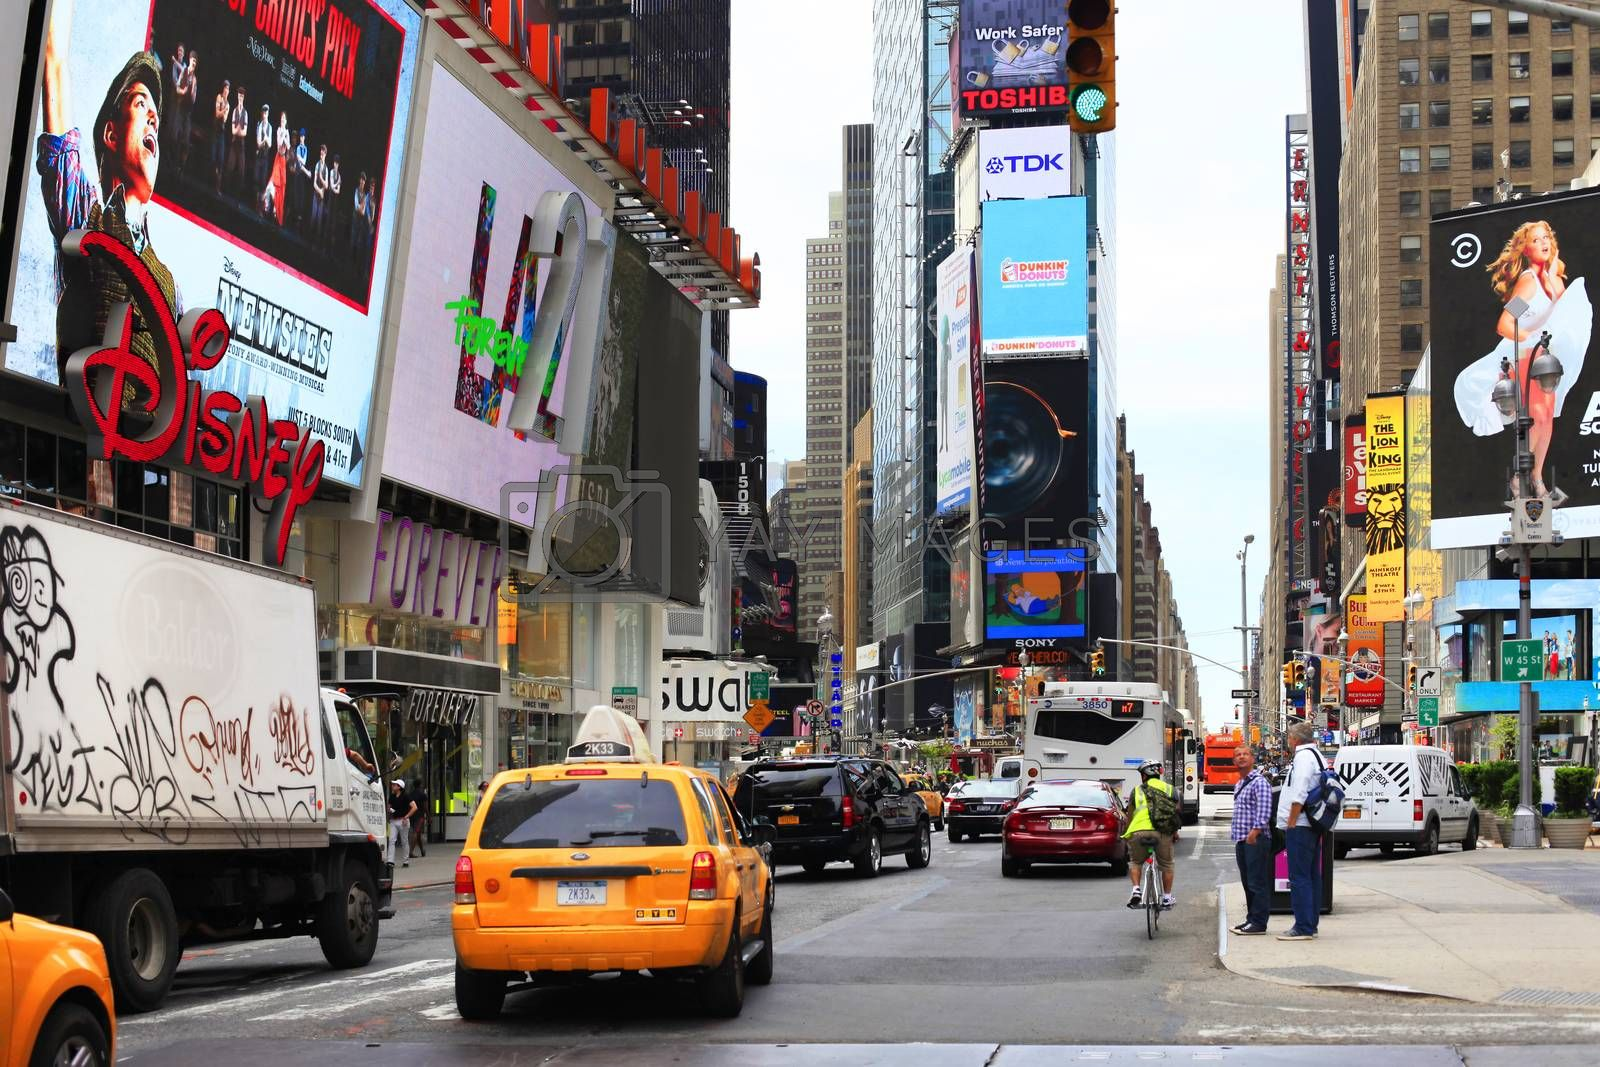 New York, NY, USA - May 17, 2013: Times Square, featured with Broadway Theaters and huge number of LED signs, is a symbol of New York City and the United States, May 17, 2013 in Manhattan, New York City